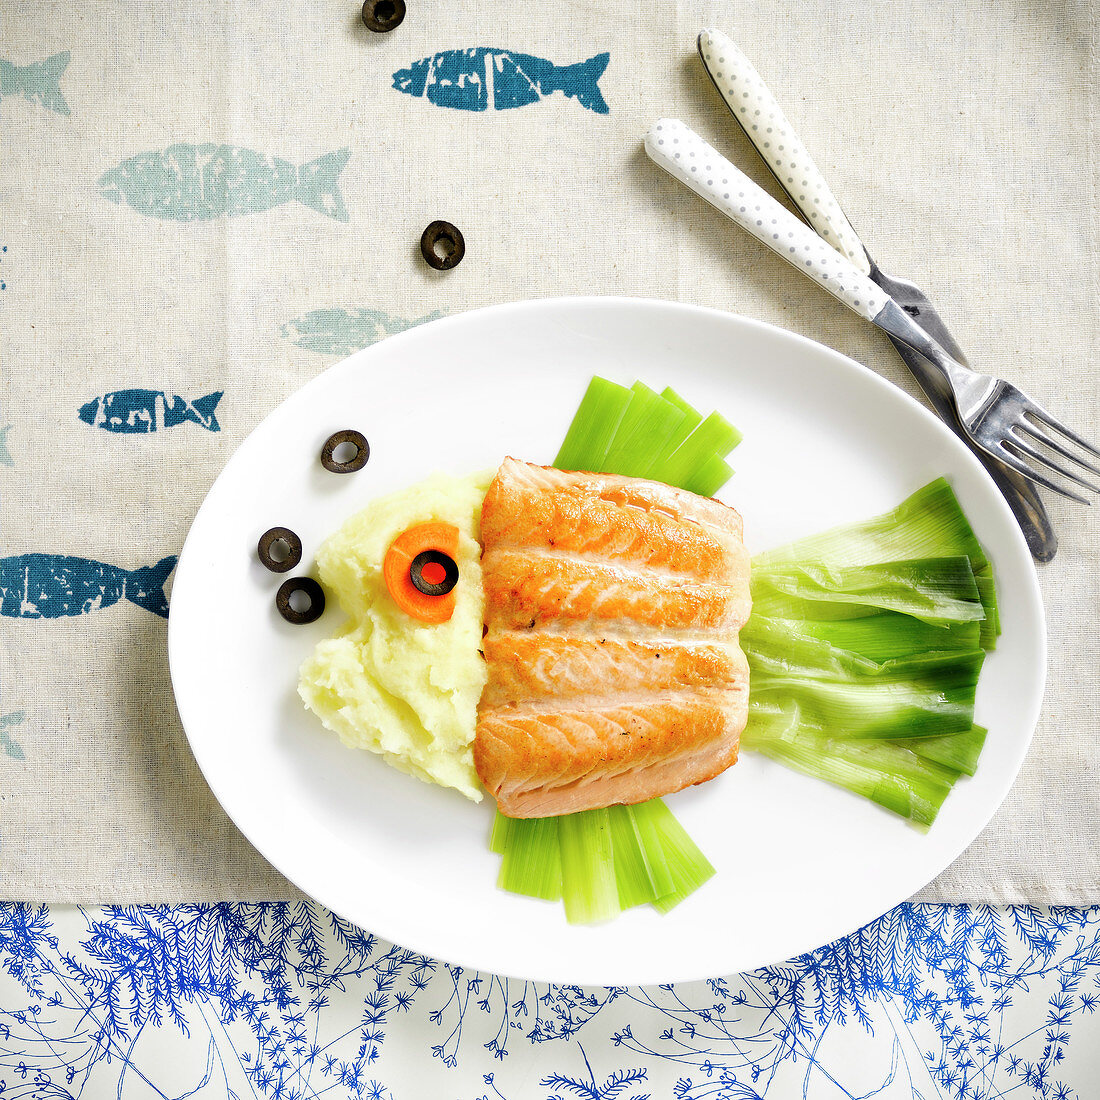 Fish-shaped plate of salmon, leeks and black olives